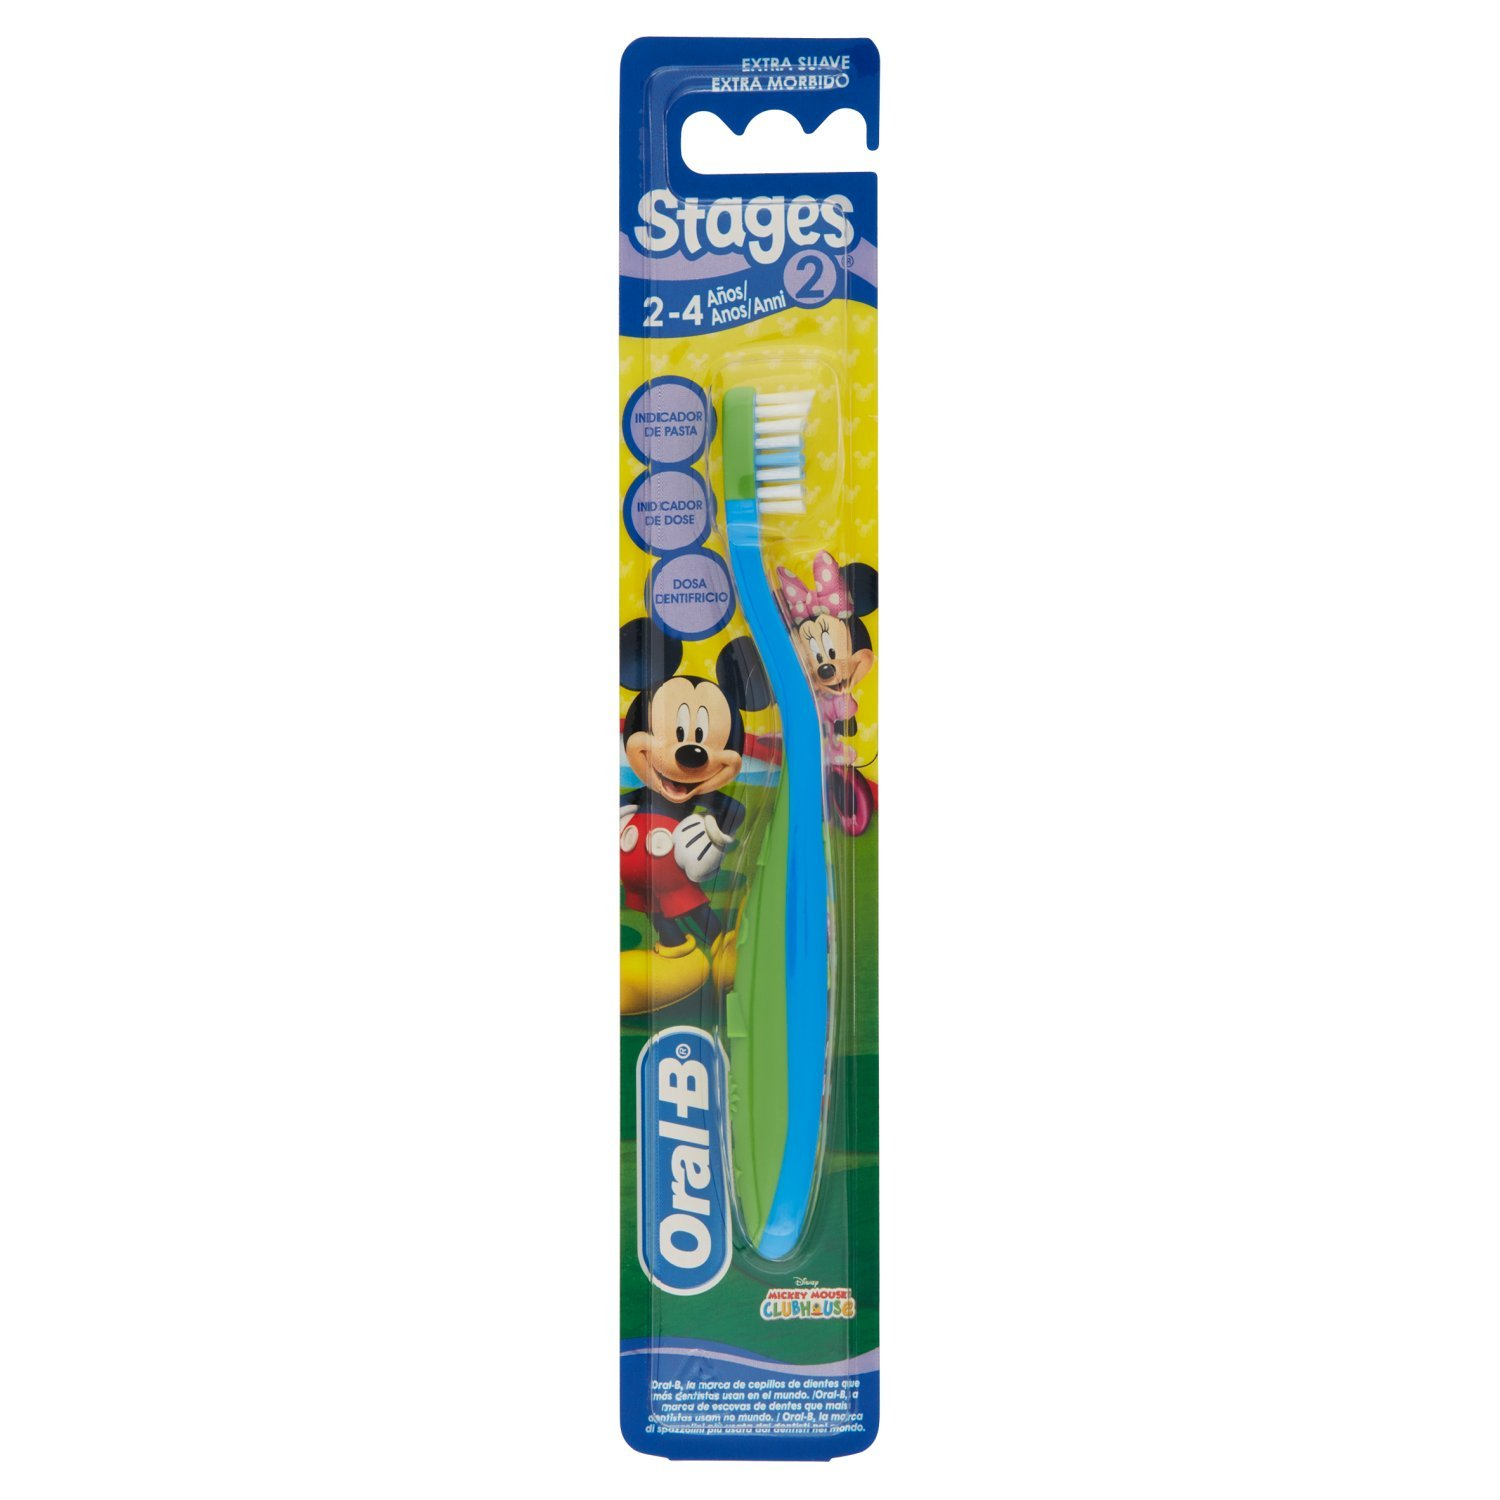 Amazon.com: Oral-B Stages 2 Toothbrush Manual Soft Children: Health & Personal Care